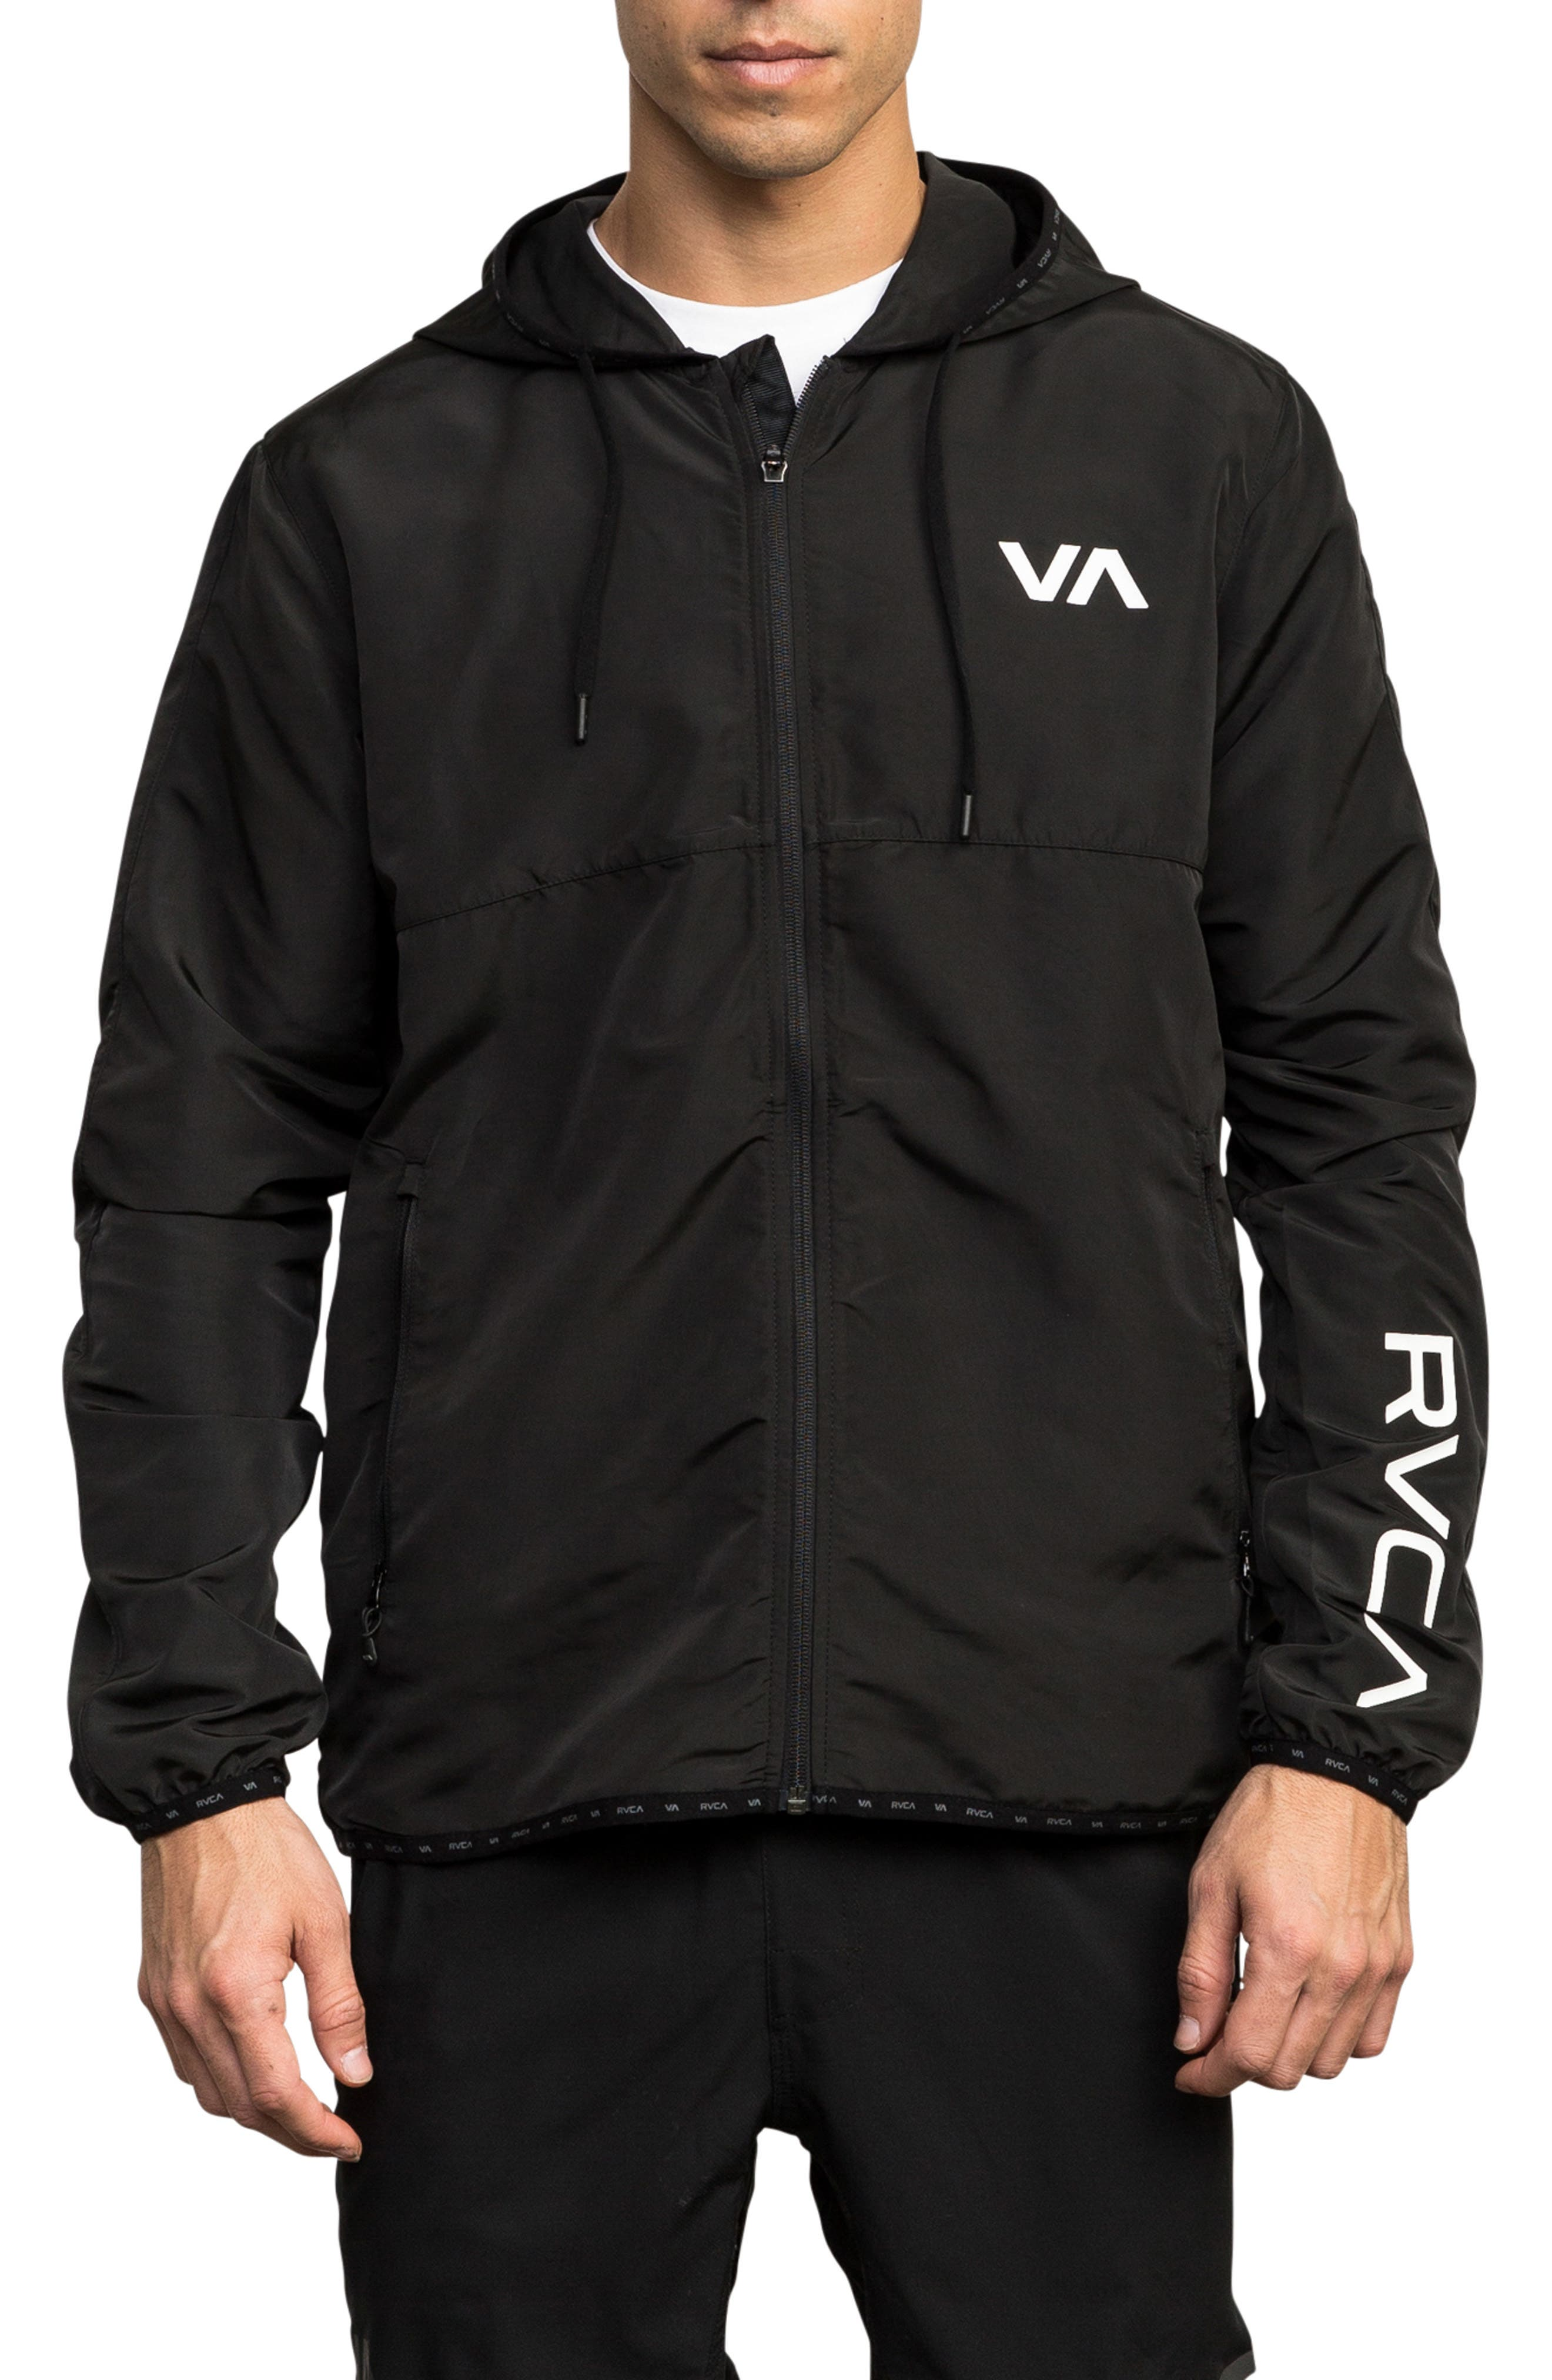 Axe Packable Water Resistant Jacket,                         Main,                         color, BLACK